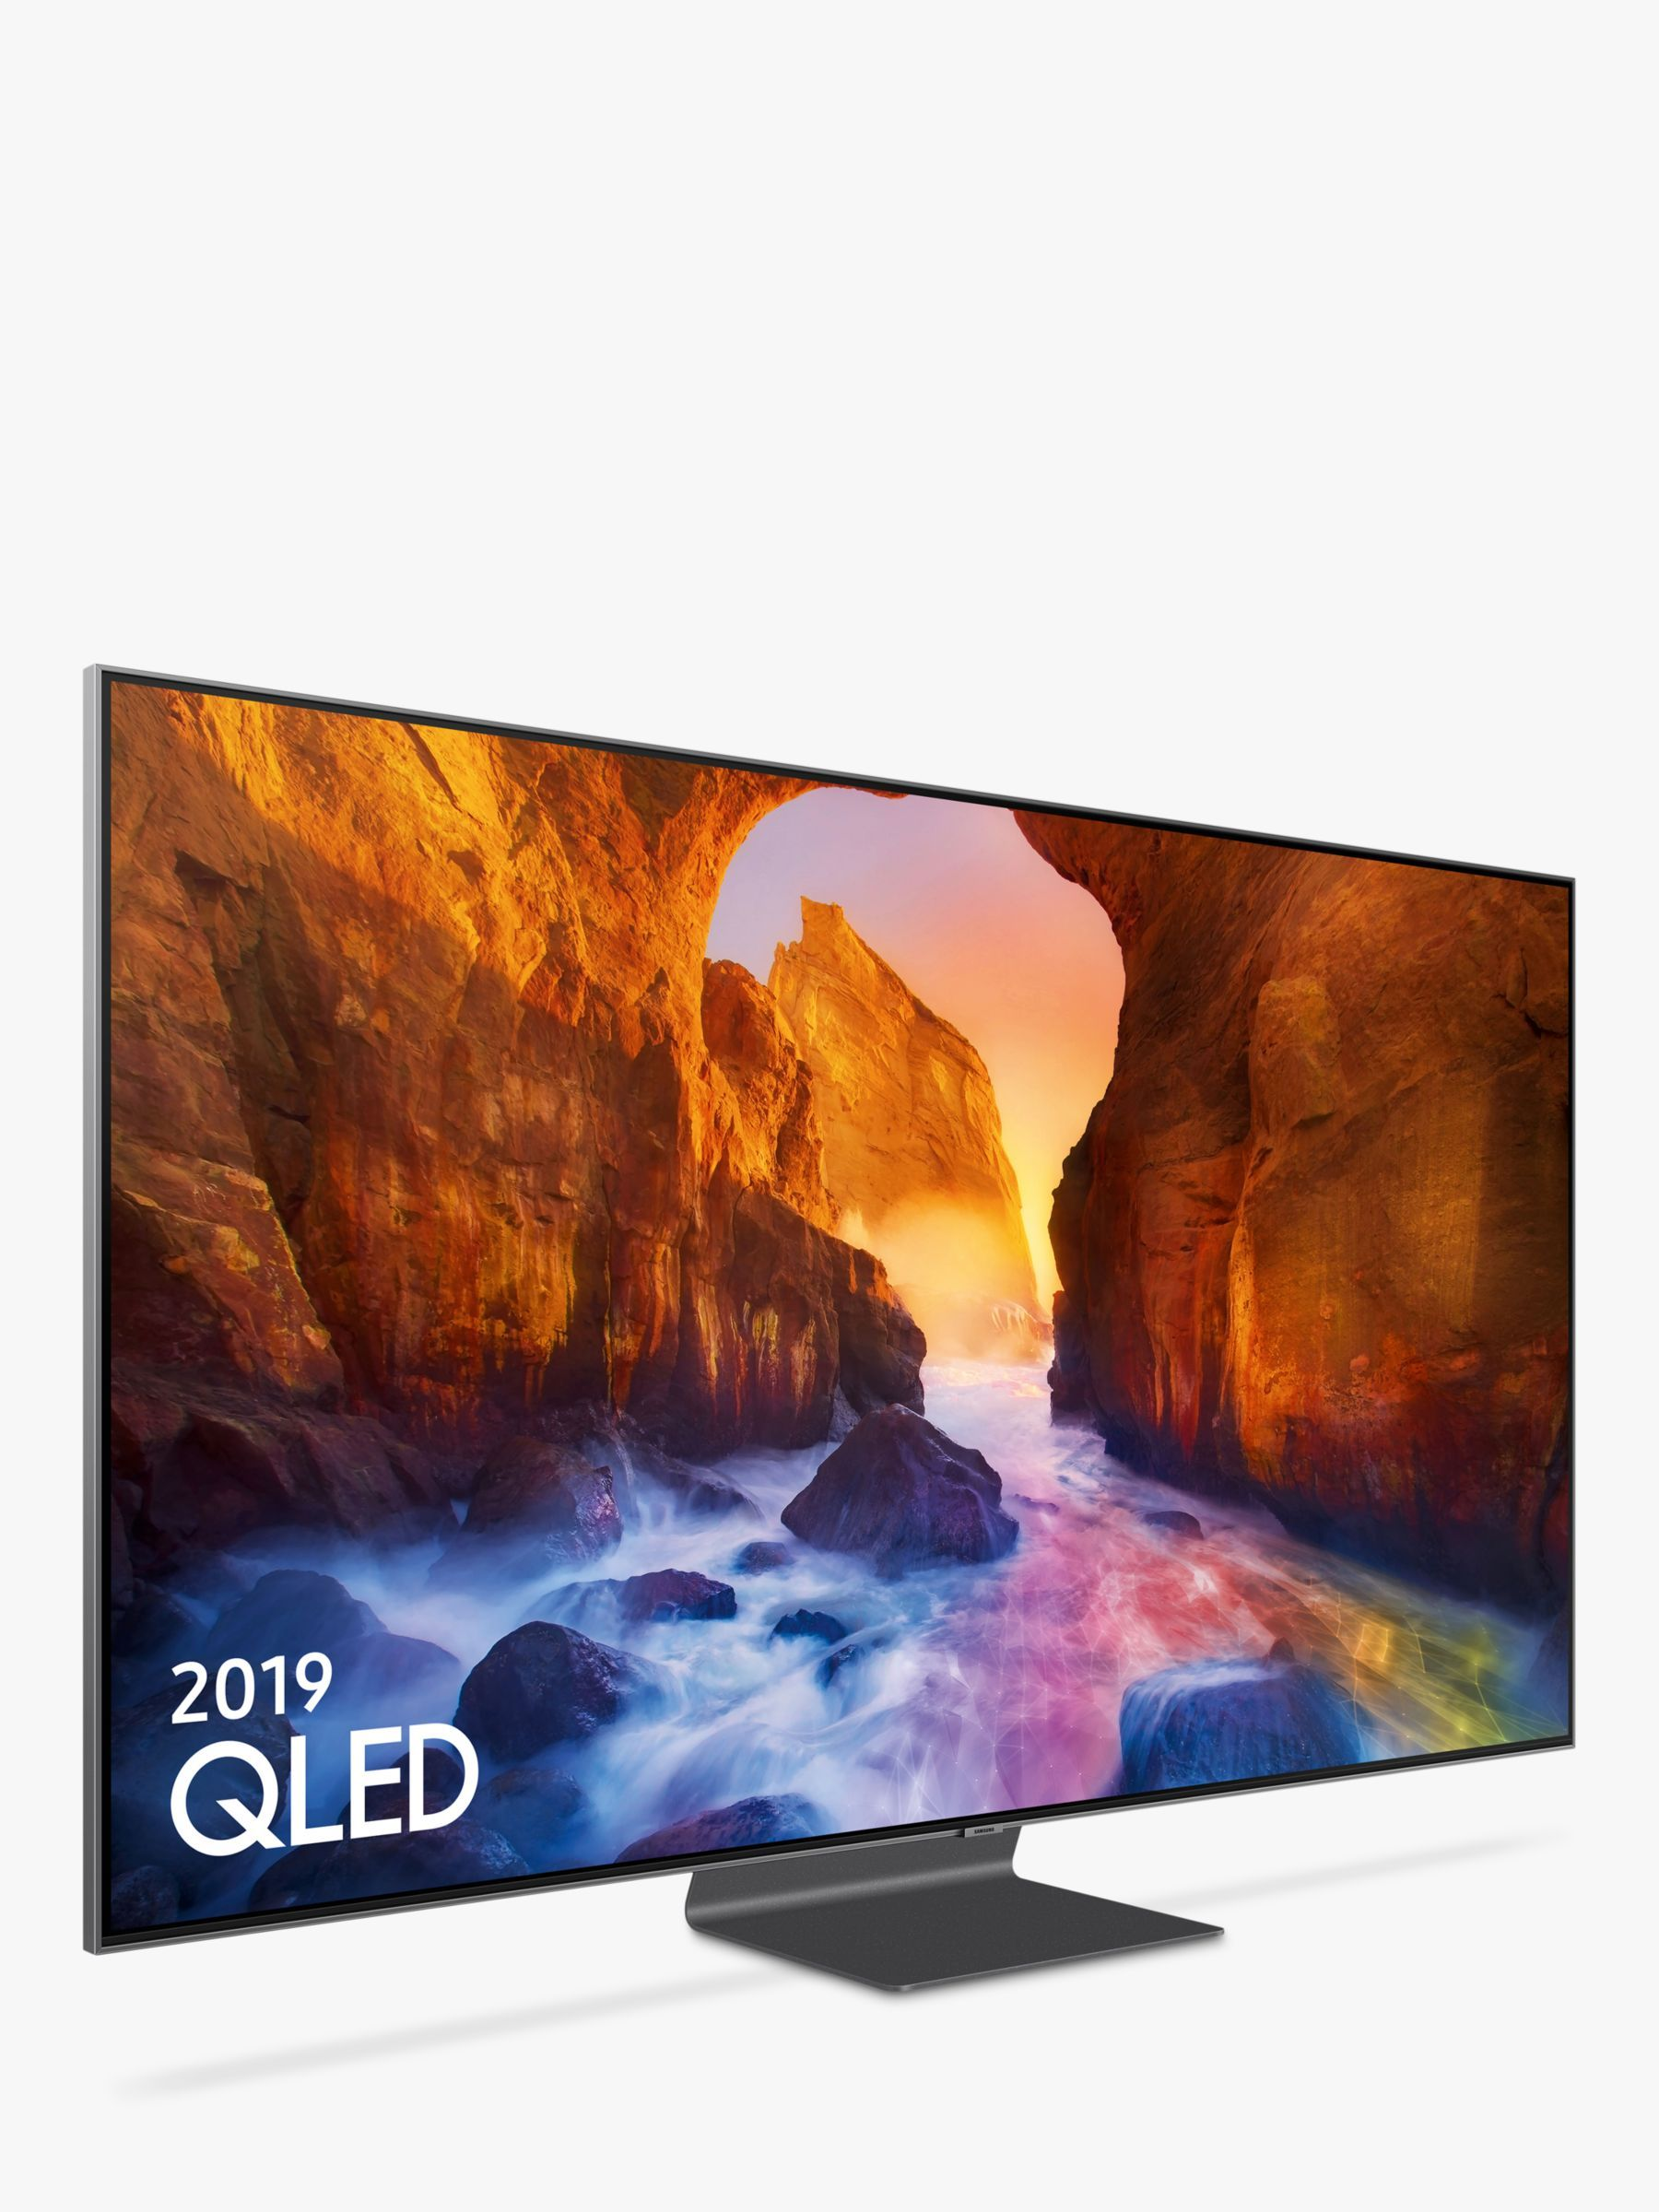 Samsung QE55Q90R (2019) QLED HDR 2000 4K Ultra HD Smart TV